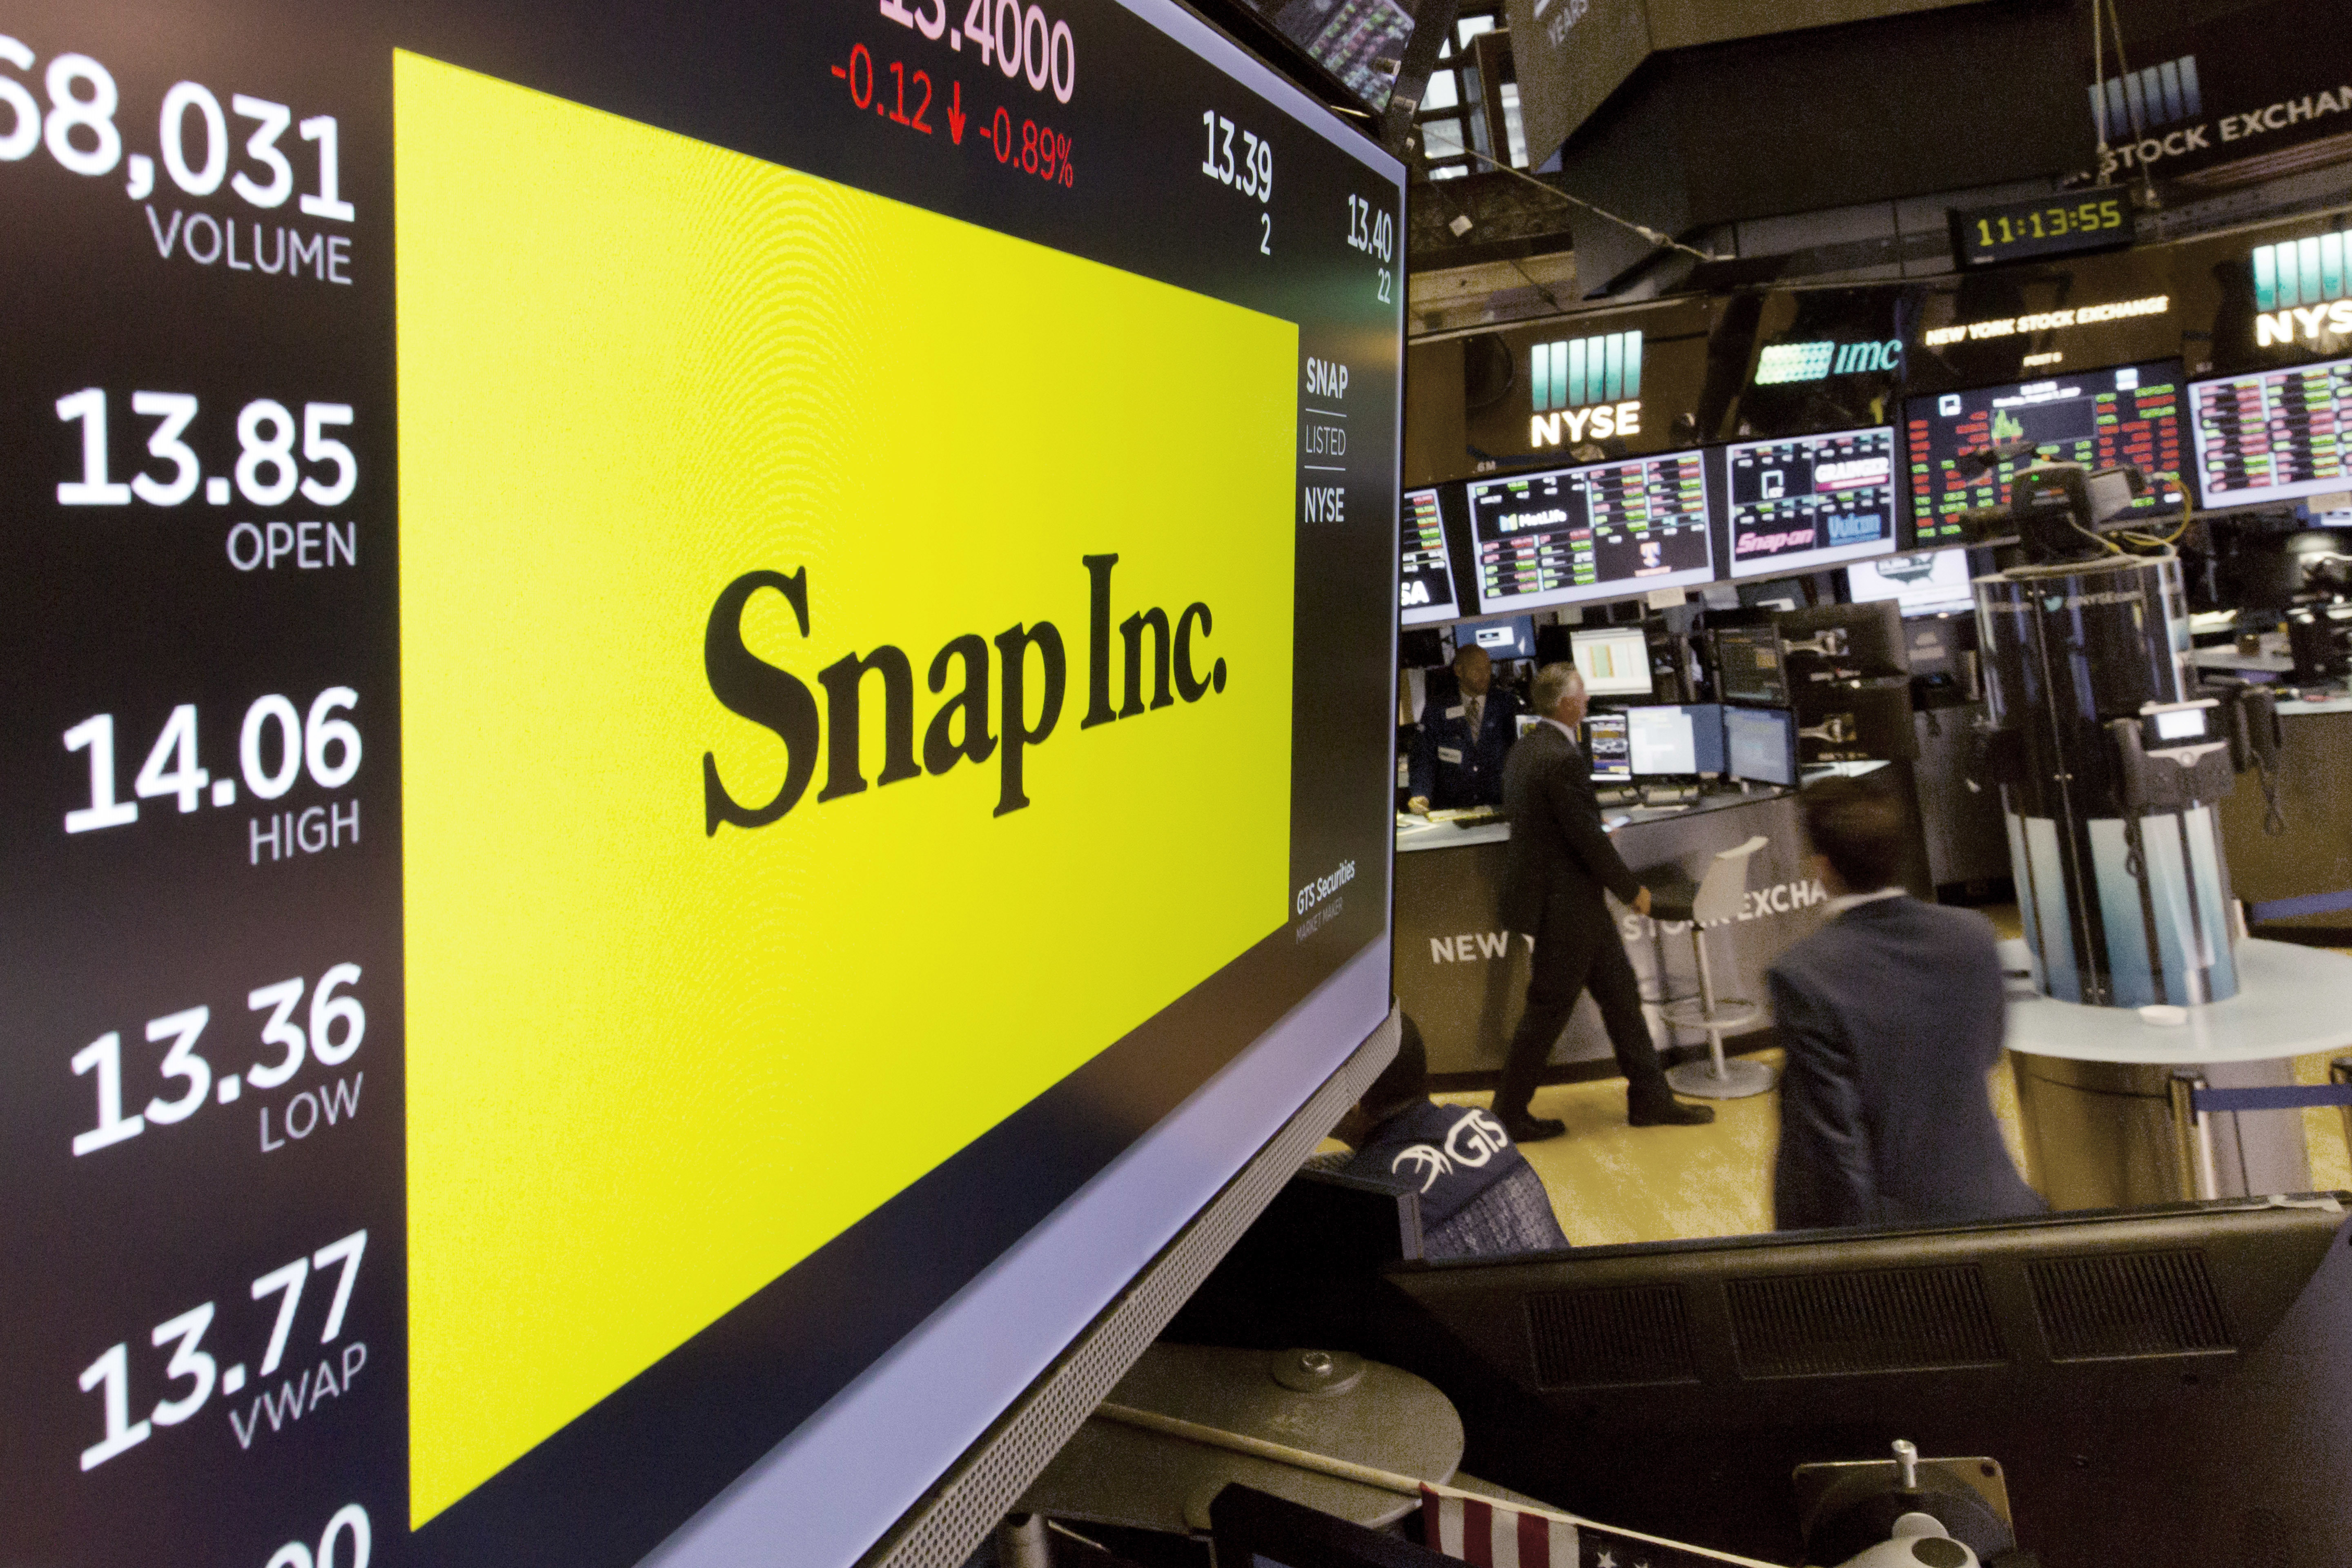 The Snap Inc. logo appears on a screen above a trading post on the floor of the New York Stock Exchange, Monday, Aug. 7, 2017. (AP Photo/Richard Drew)